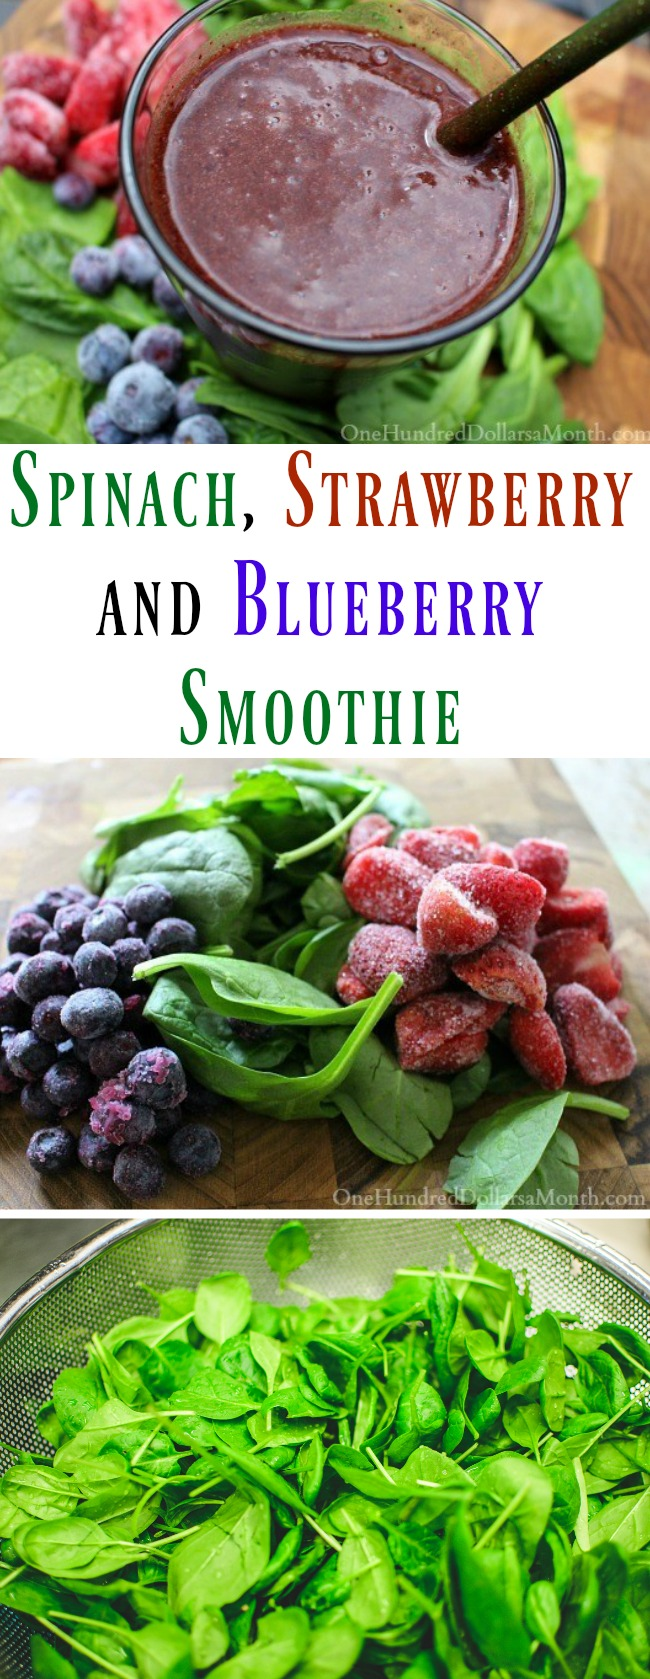 Spinach, Strawberry and Blueberry Smoothie